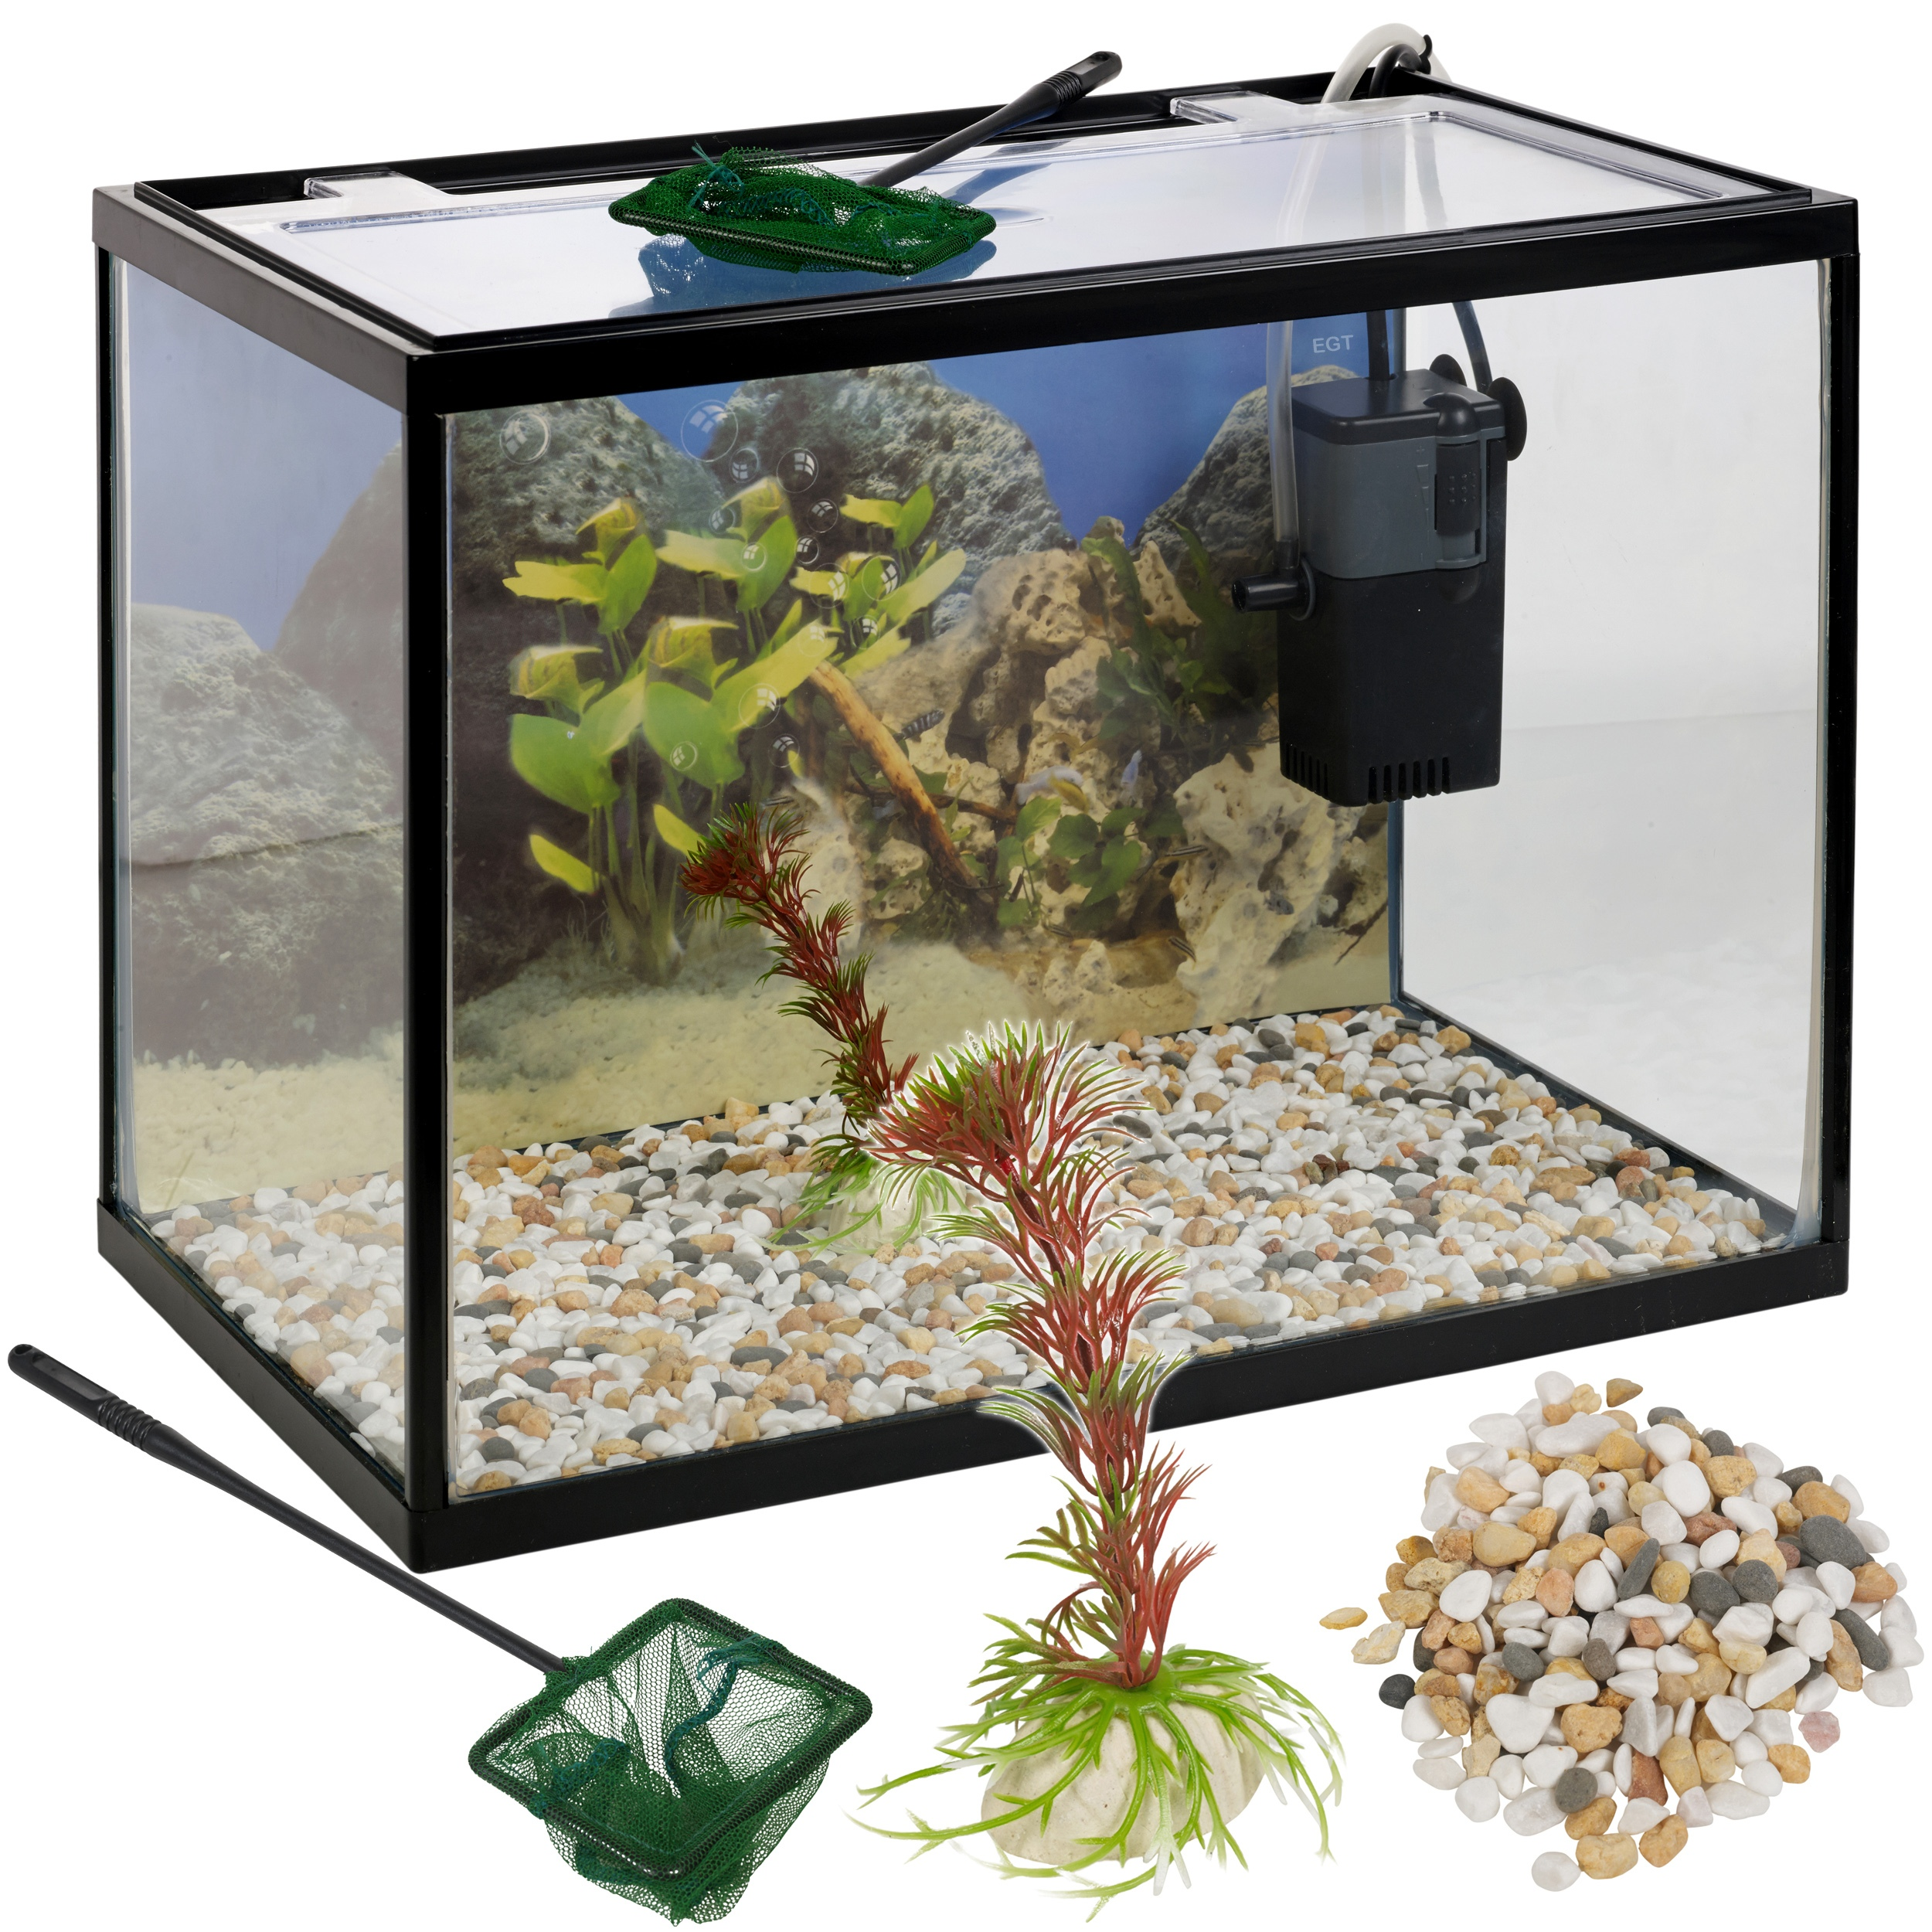 Pink fish tank aquarium with filter - 18 Litre Glass Aquarium Fish Tank Starter Set With Filter Pump Net Plant Stones